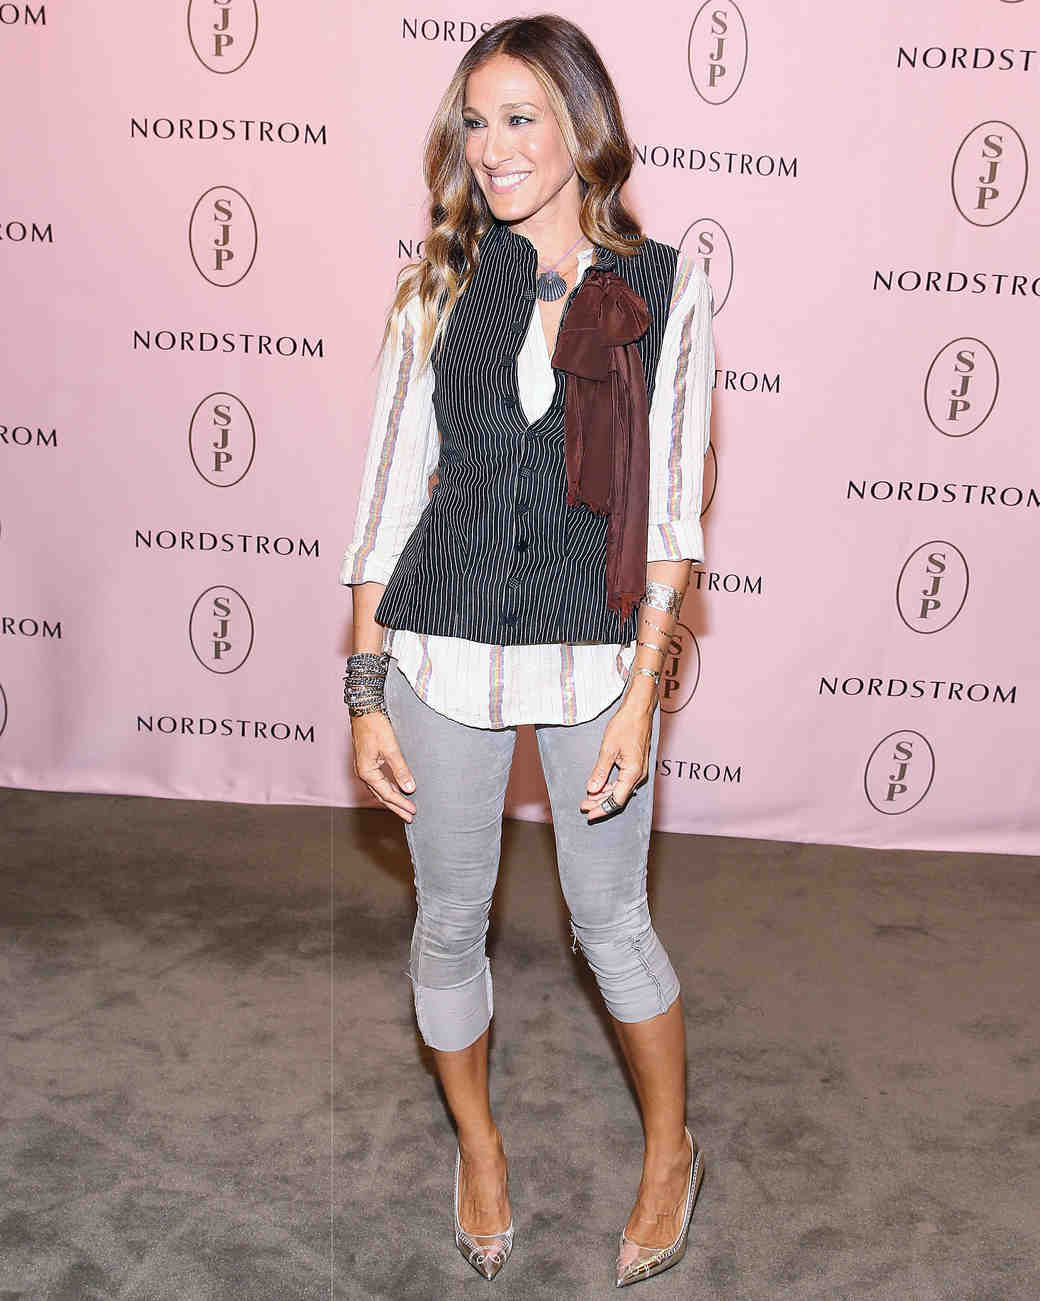 Mercedes Benz Of Tysons >> 26 Times Sarah Jessica Parker Wore Her Own Shoes on the Red Carpet | Martha Stewart Weddings